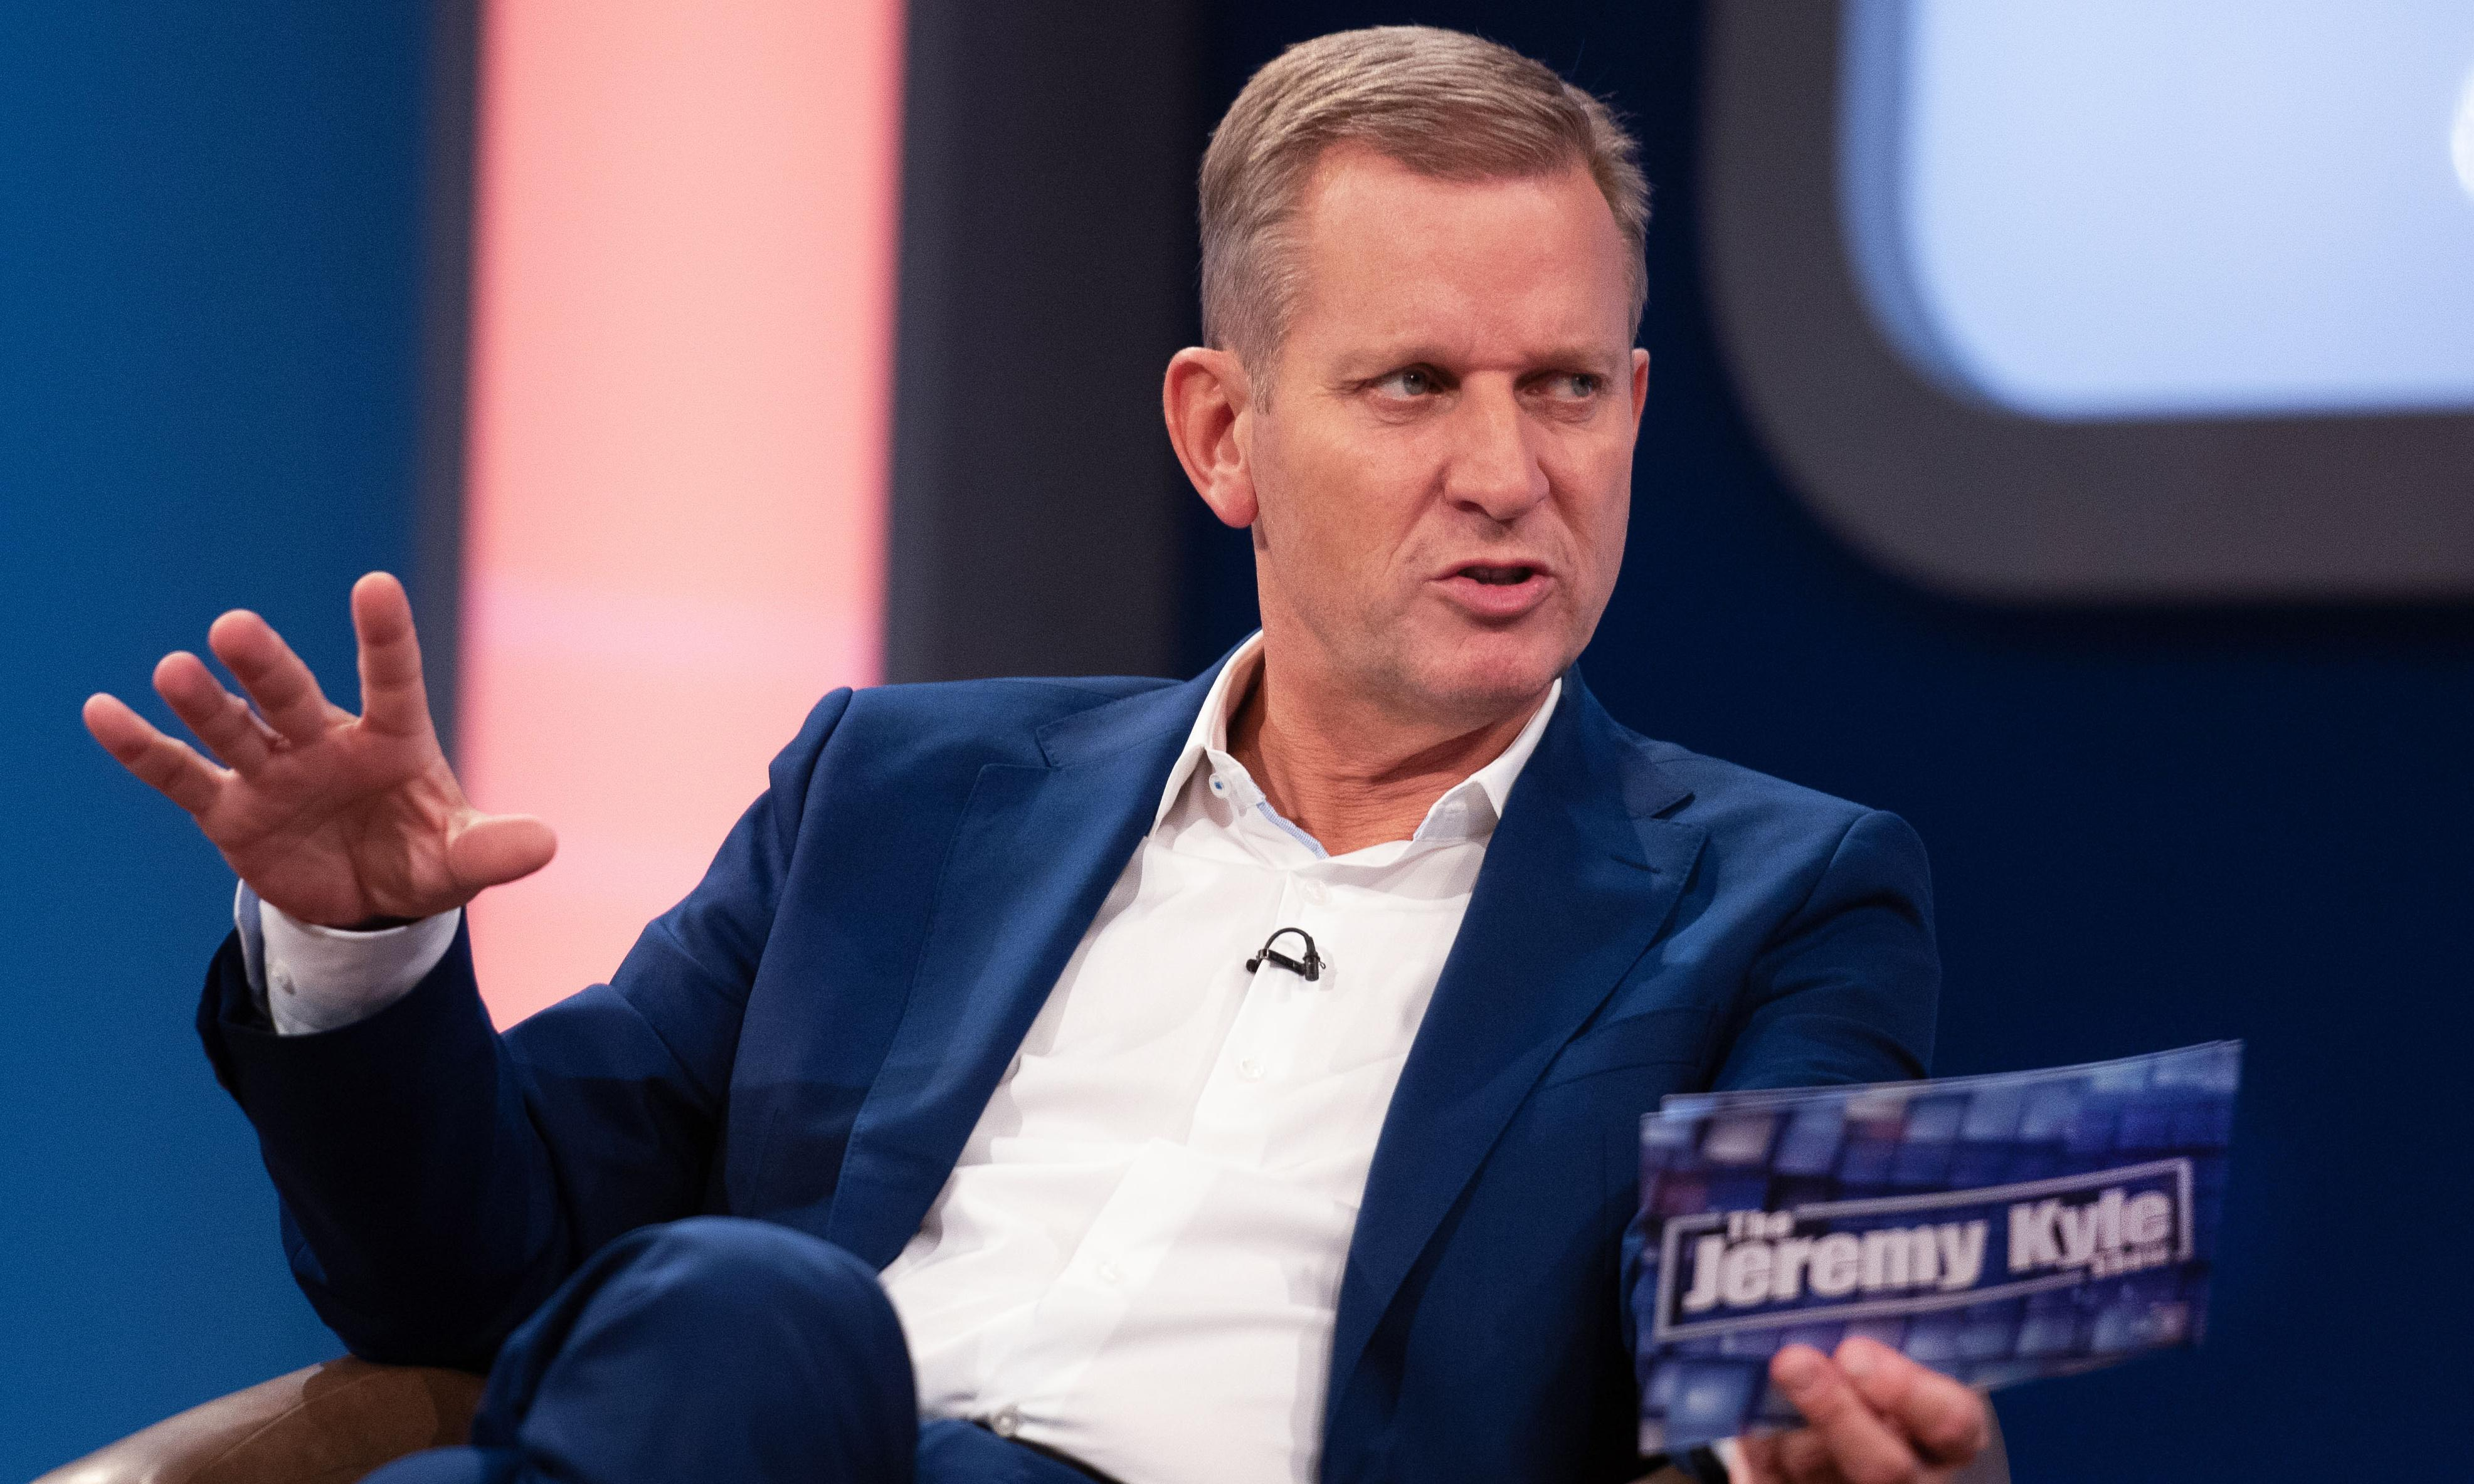 Treatment of Jeremy Kyle Show guests likened to 'Roman Colosseum'